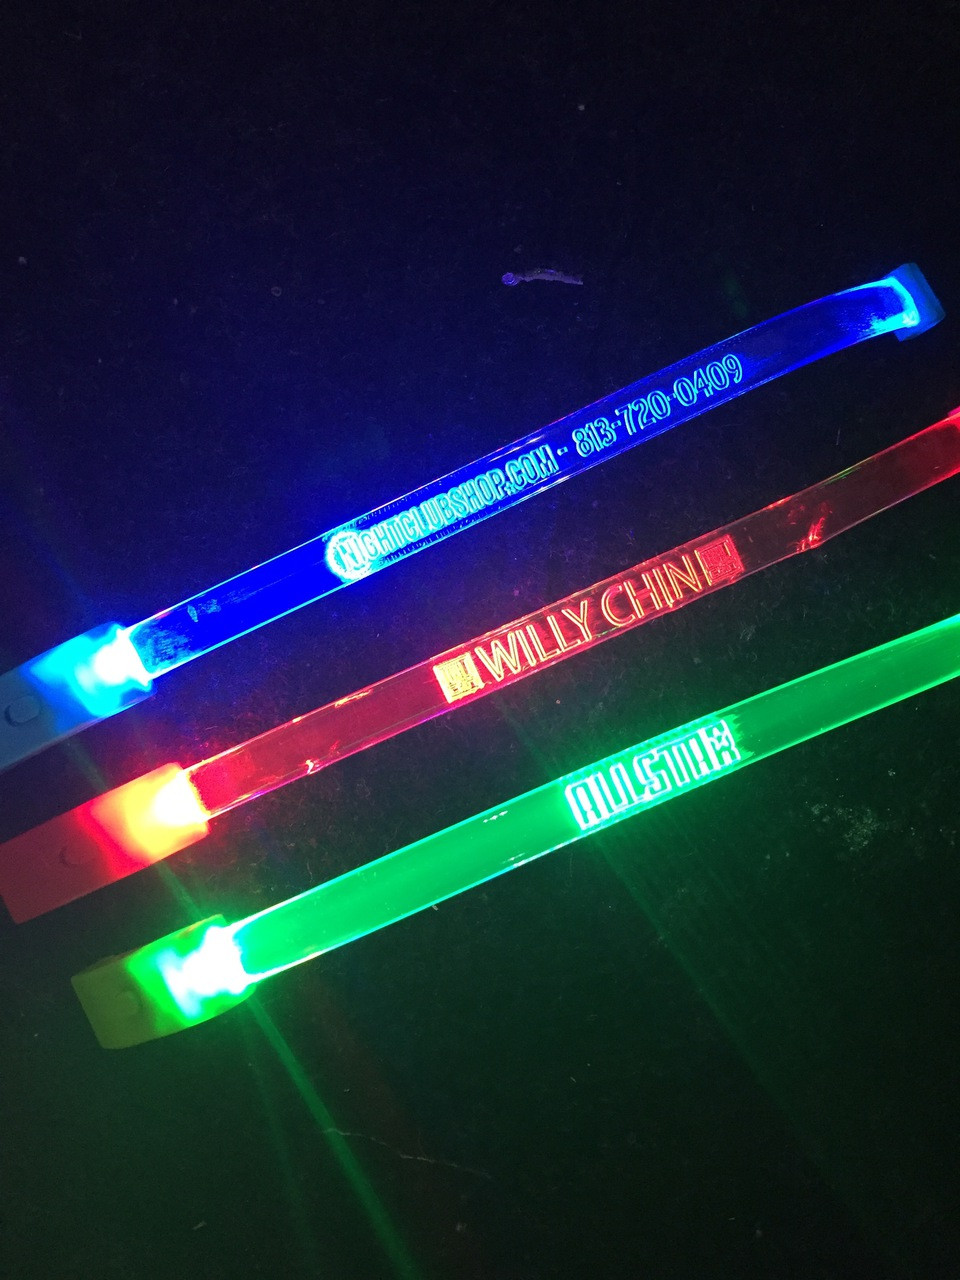 flashing, 3 mode, 3 function, LED,Custom, Print,Engraved,Wristband,Branded, Merch, promo, VIP,bracelet, LED wristband, pulse,pulsera,brazalete